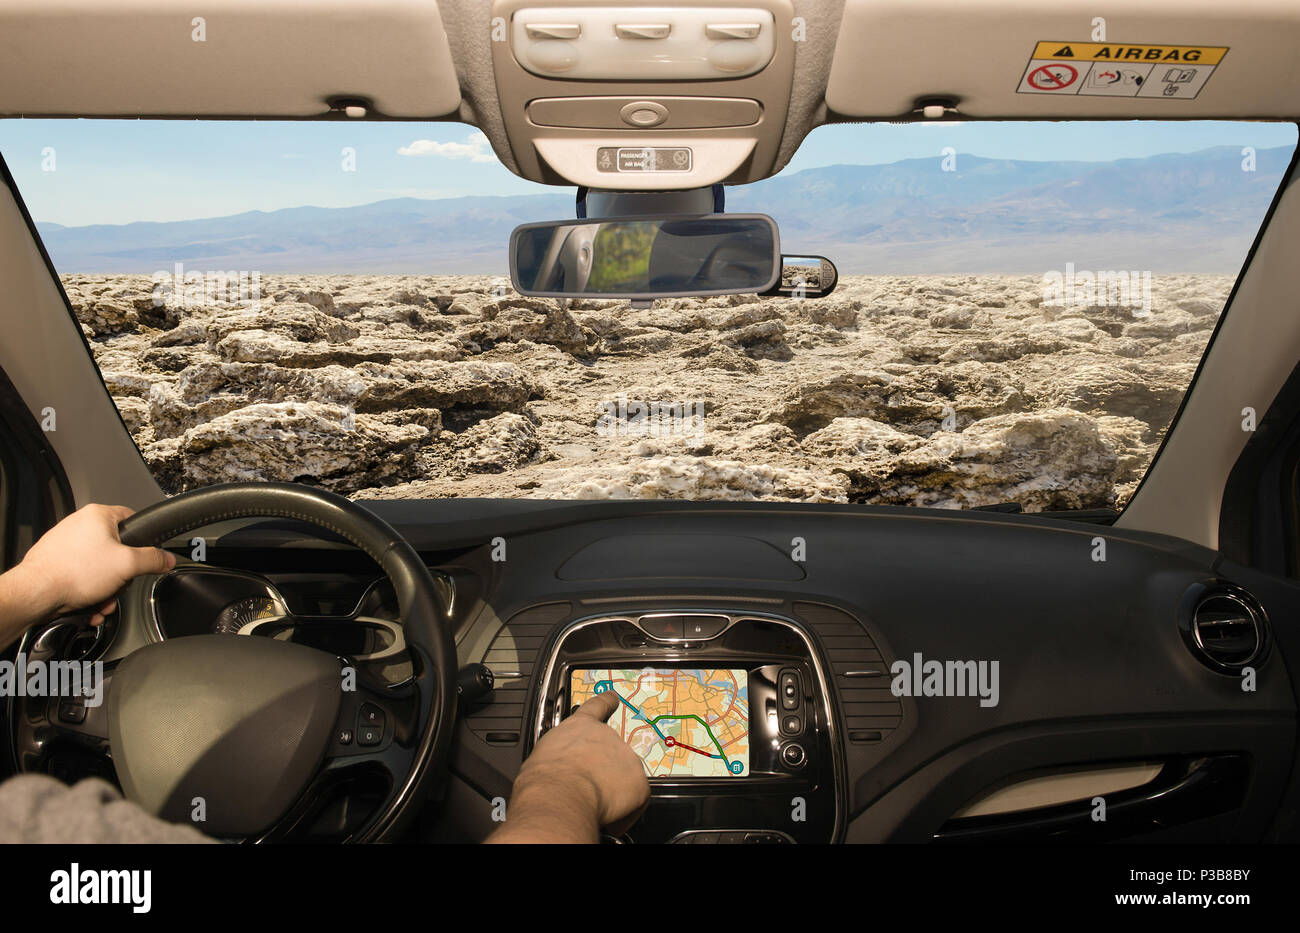 Driving a car while using the touch screen of a GPS navigation system towards Devil's Golf Course, Death Valley, USA - Stock Image